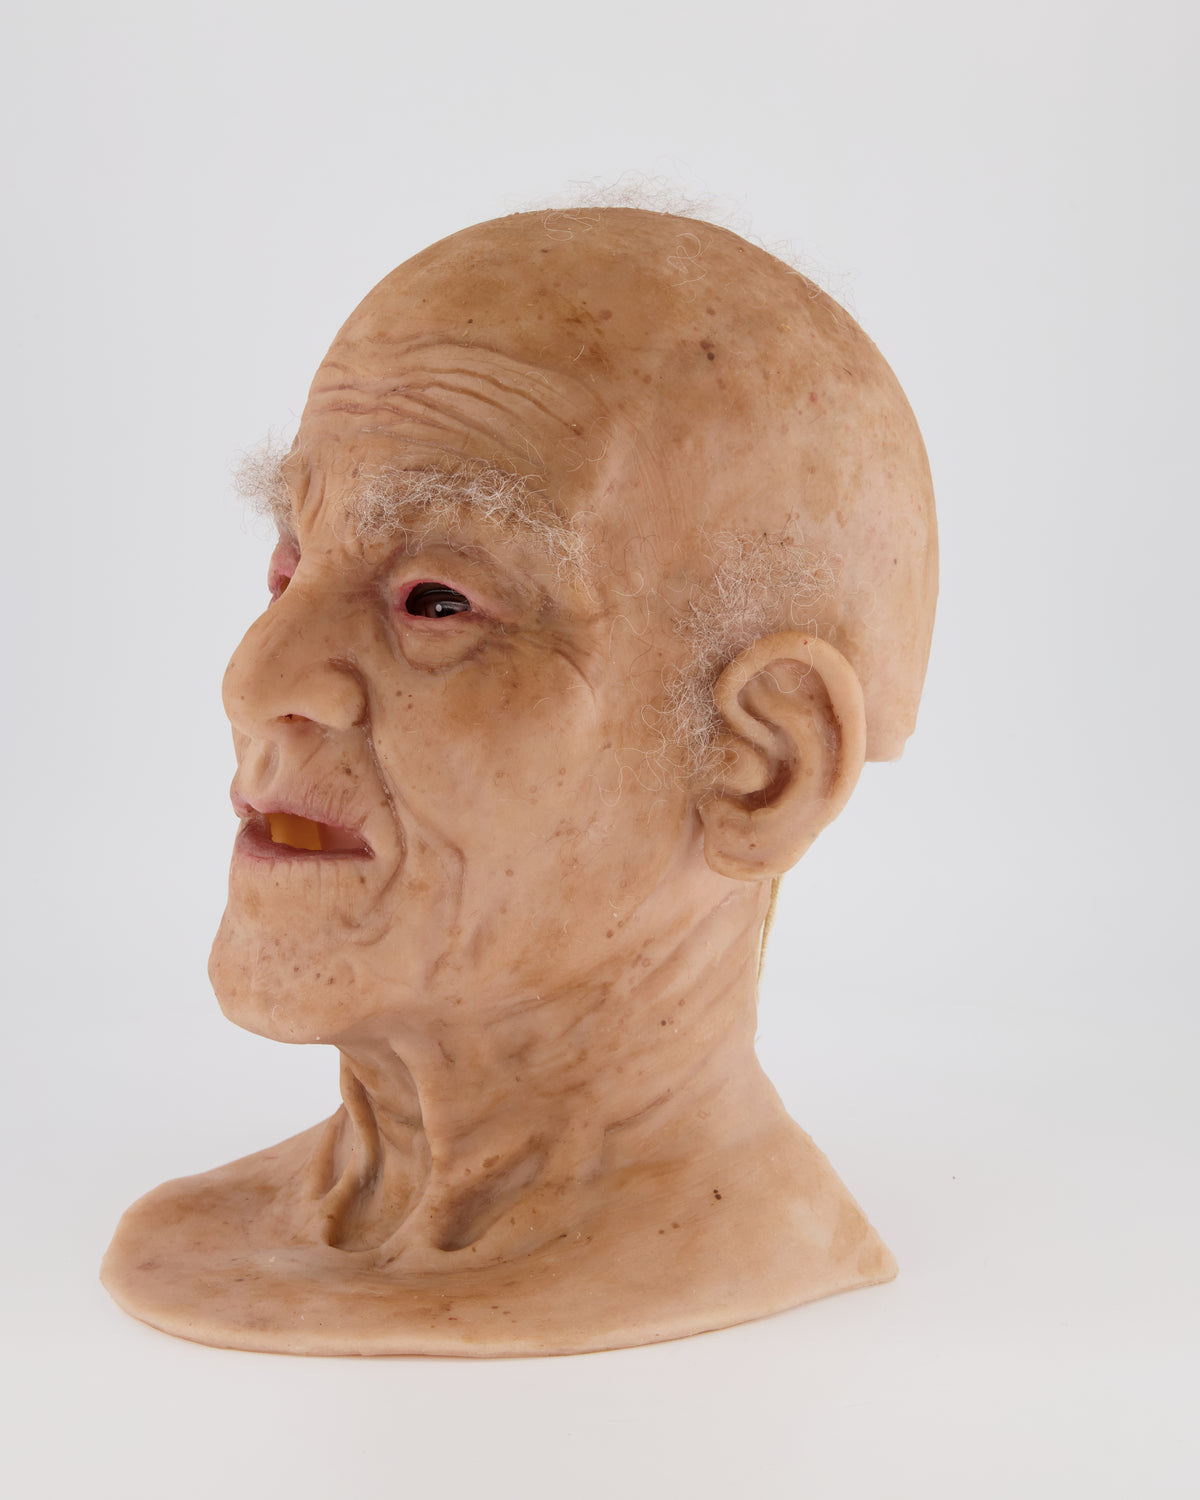 MM325 Mr. Wangler - SimMan Face overlay